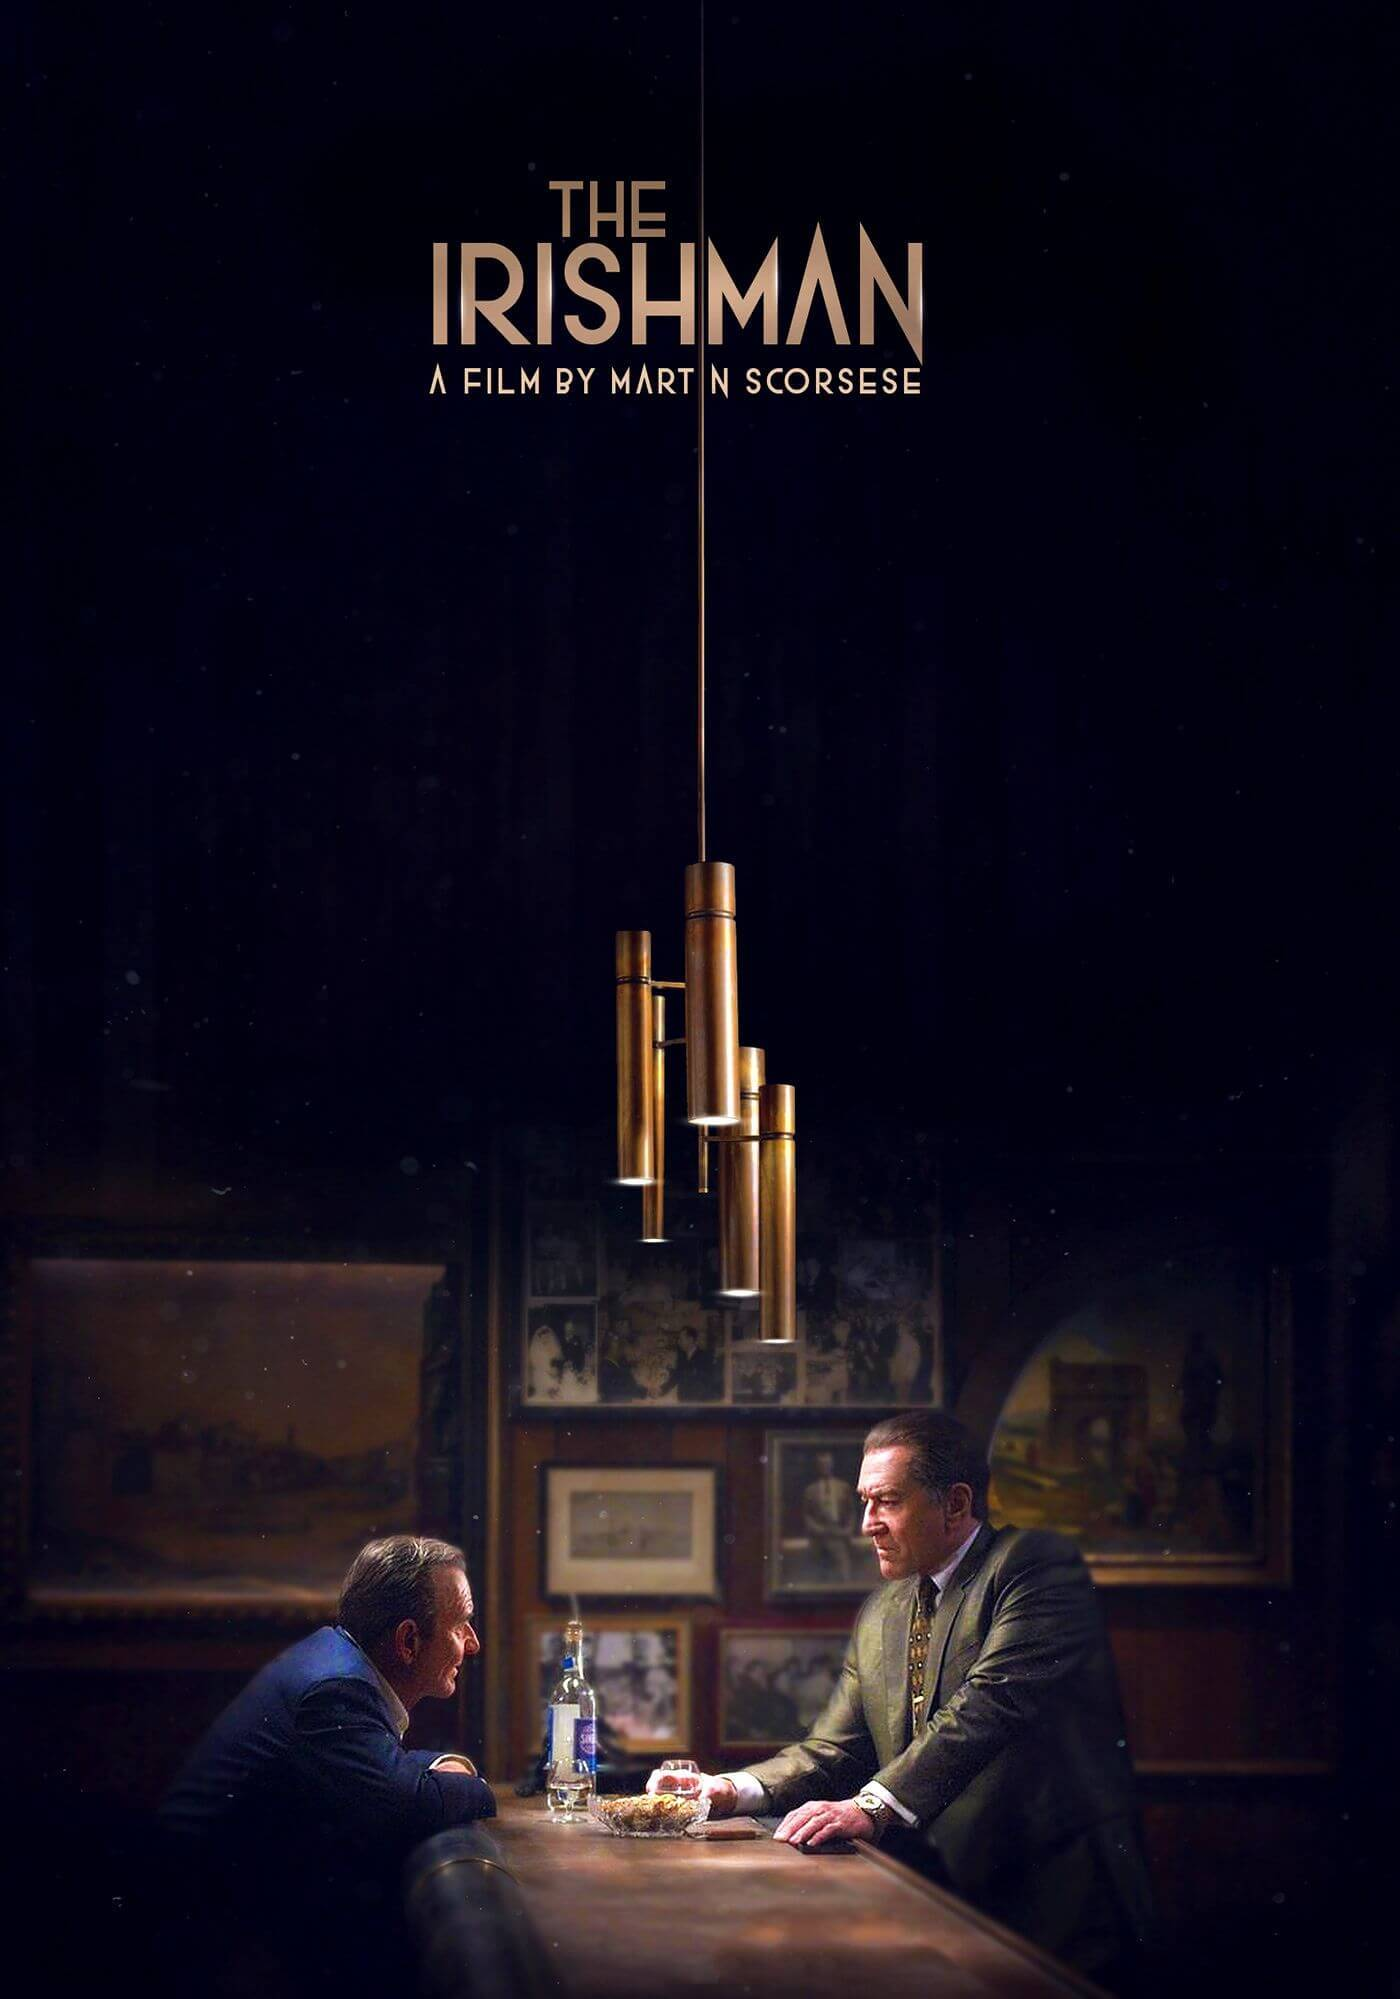 The Irishman - Robert De Niro - Joe Pesci - Martin Scorsese Hollywood English Movie Poster - Art Prints